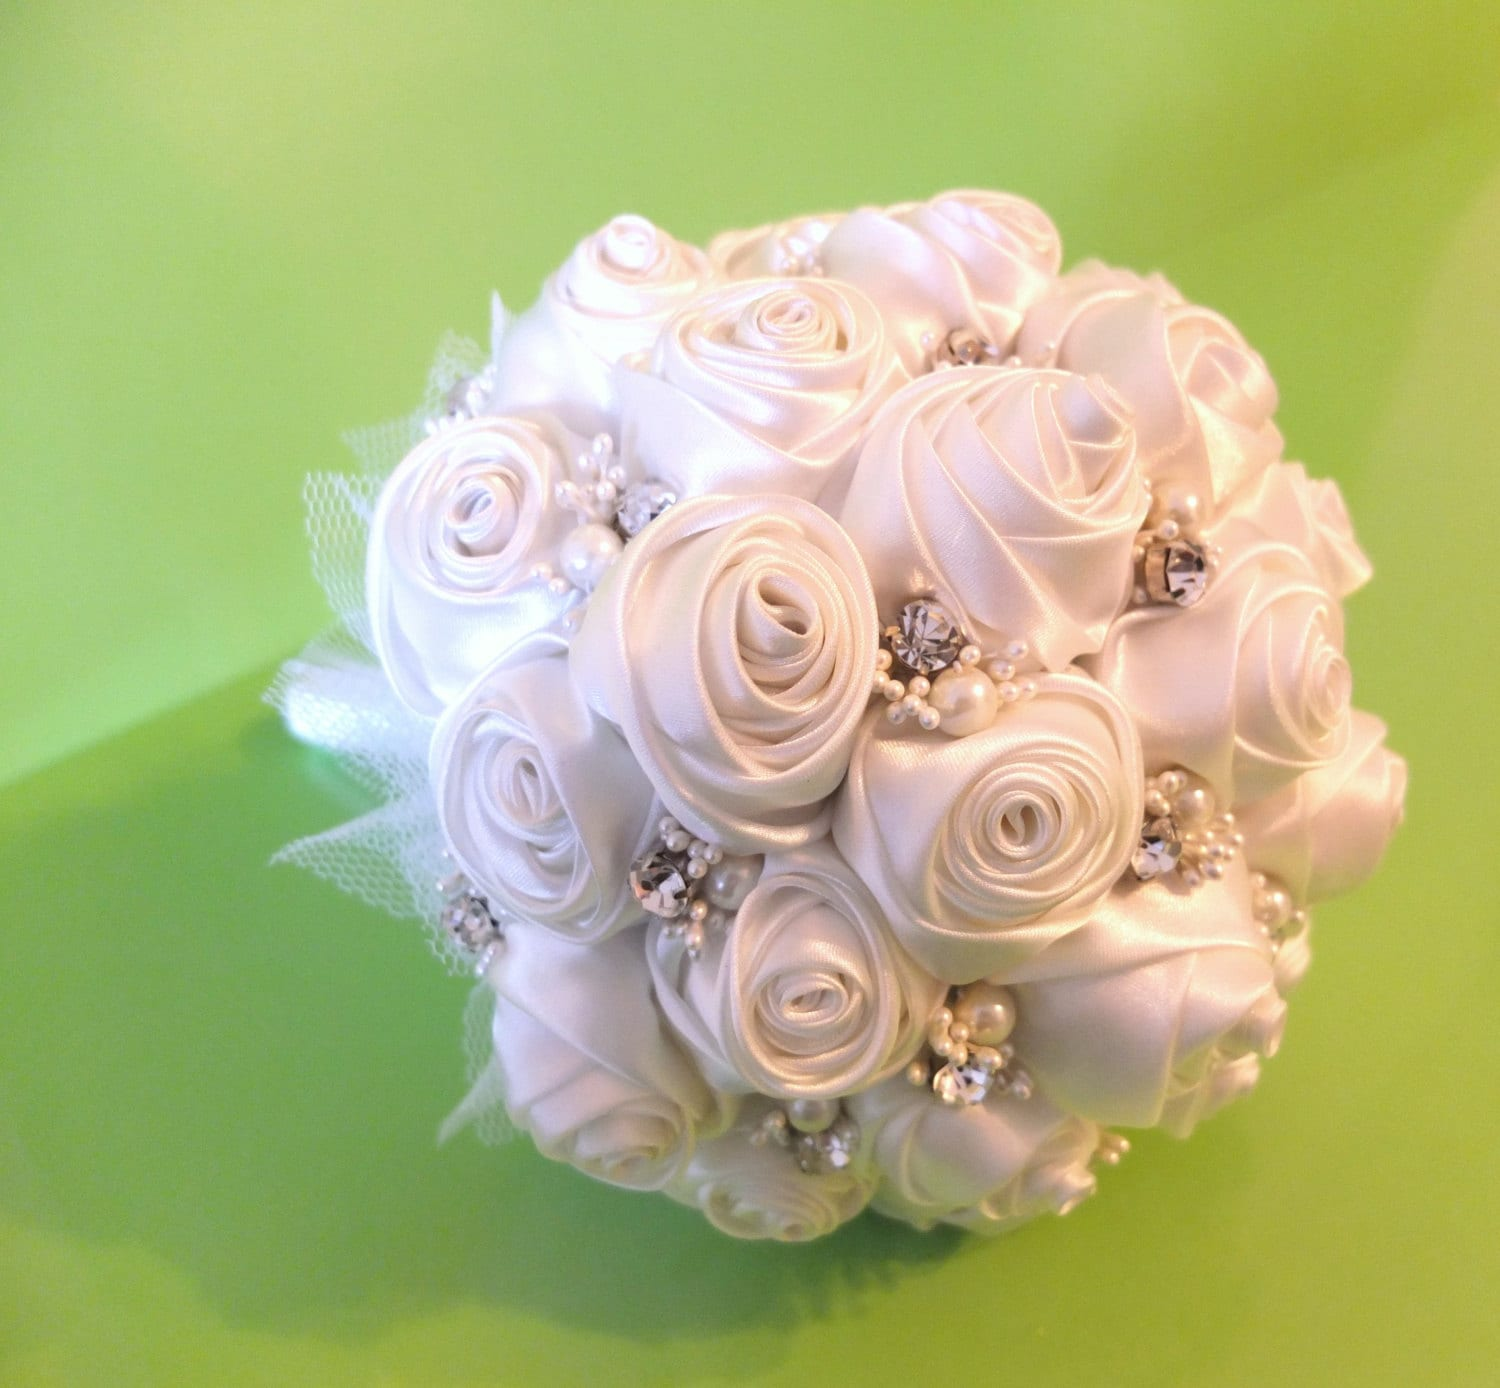 Handmade ribbon rose bouquet off white rose accented with etsy handmade ribbon rose bouquet off white rose accented with rhinestone izmirmasajfo